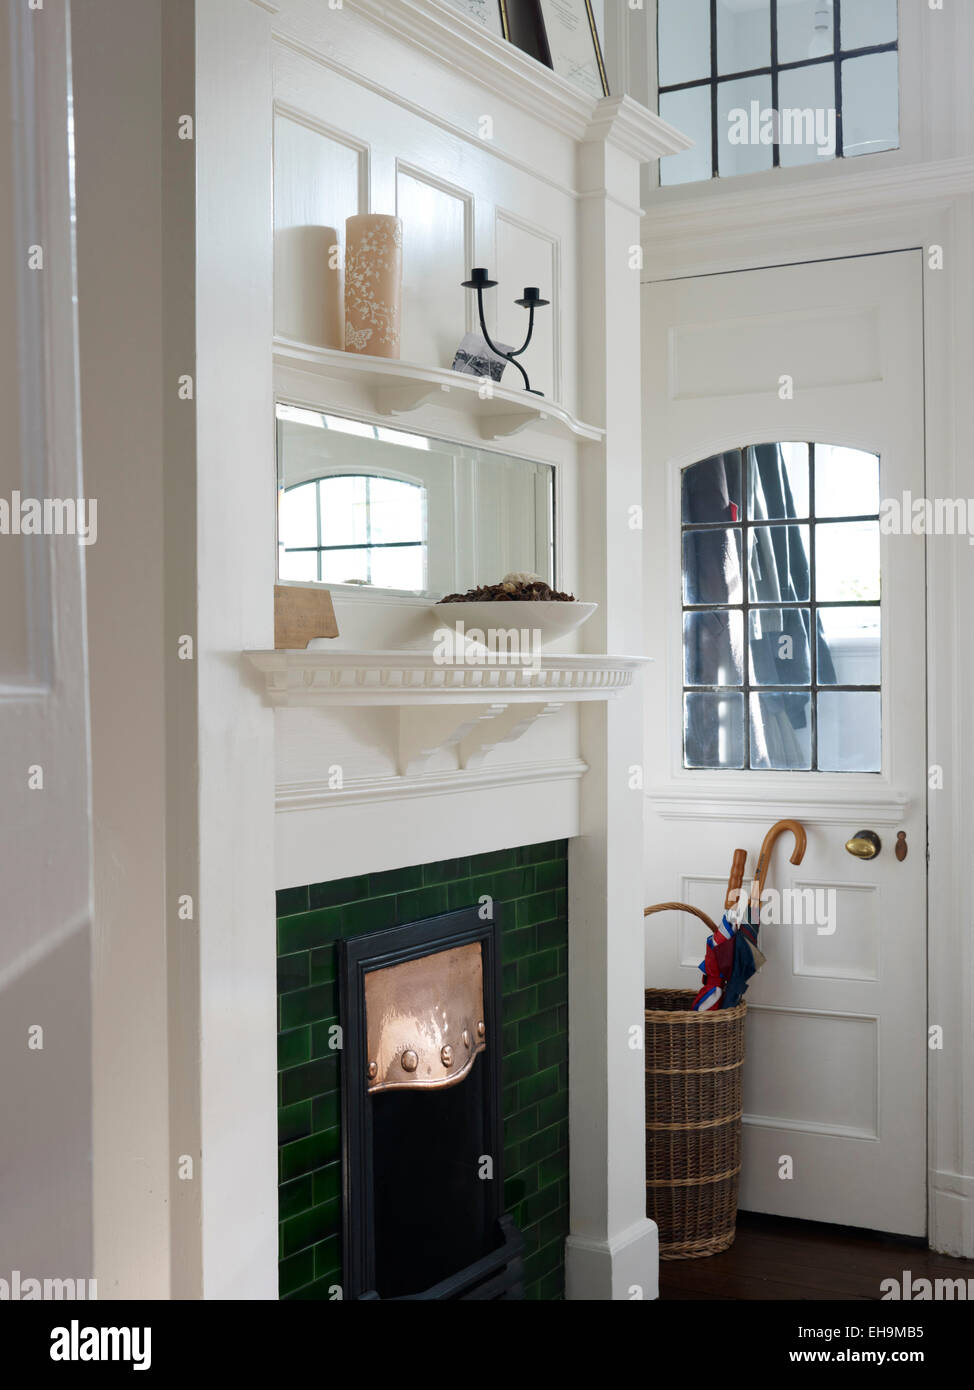 Interior Of Modern Apartment Living Room Hall Kitchen White Entrance With Green Fireplace Edwardian Residential House Kingsmead UK